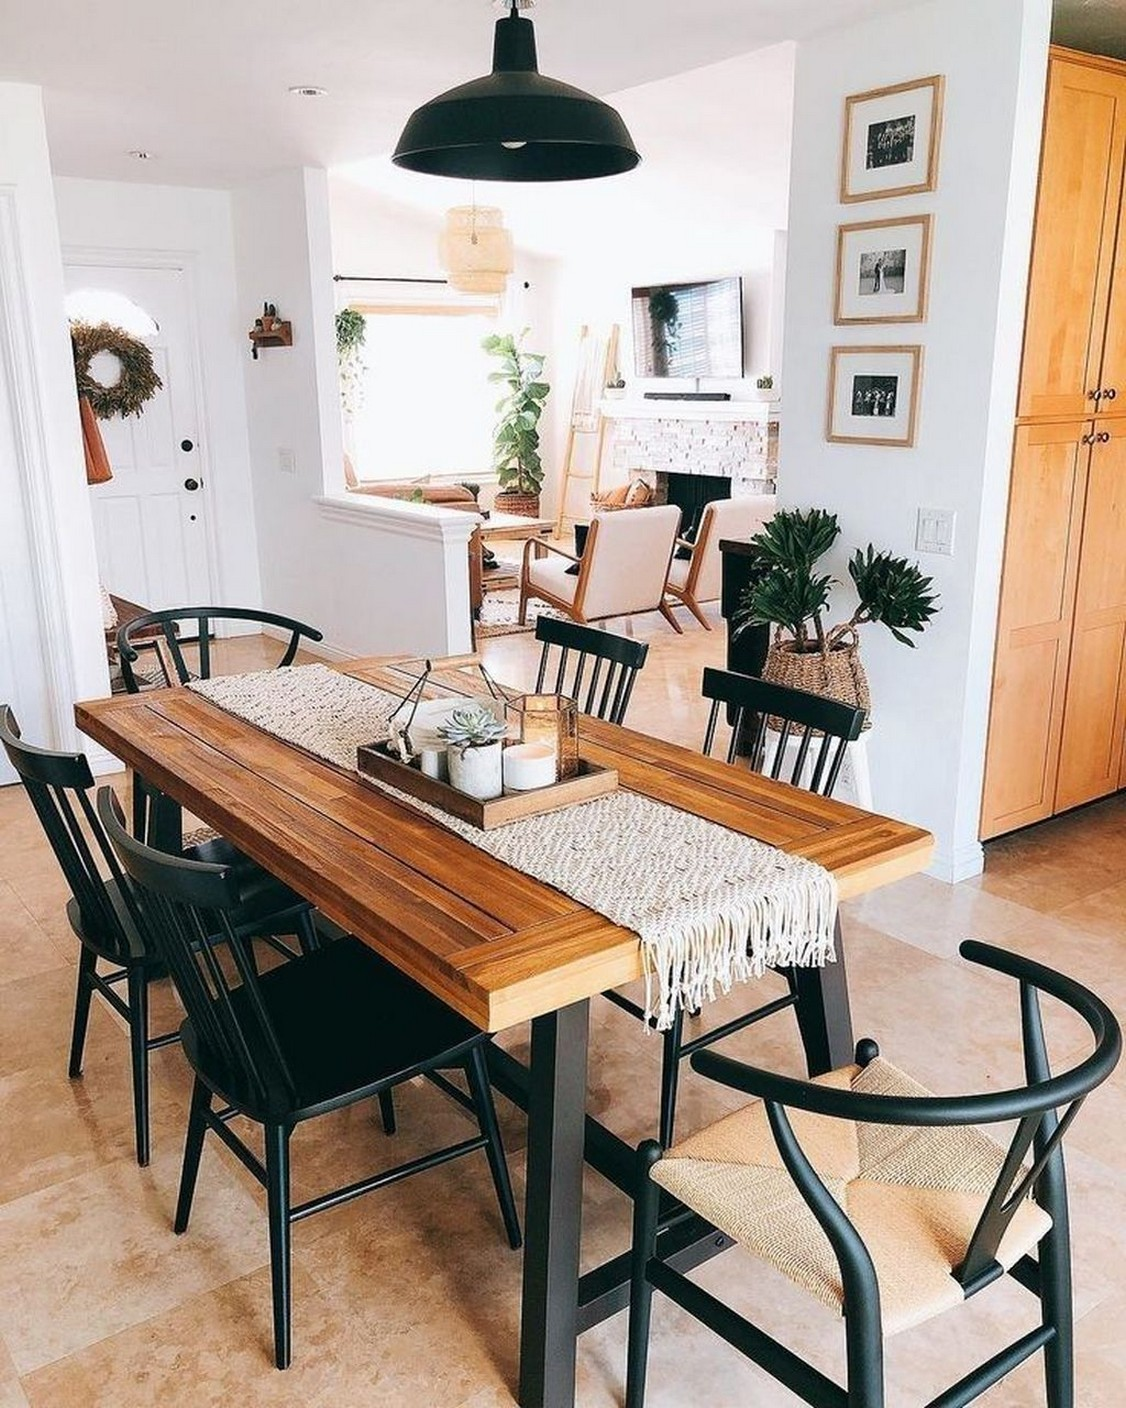 86 Different Types Of Dining Chairs Home Decor 44